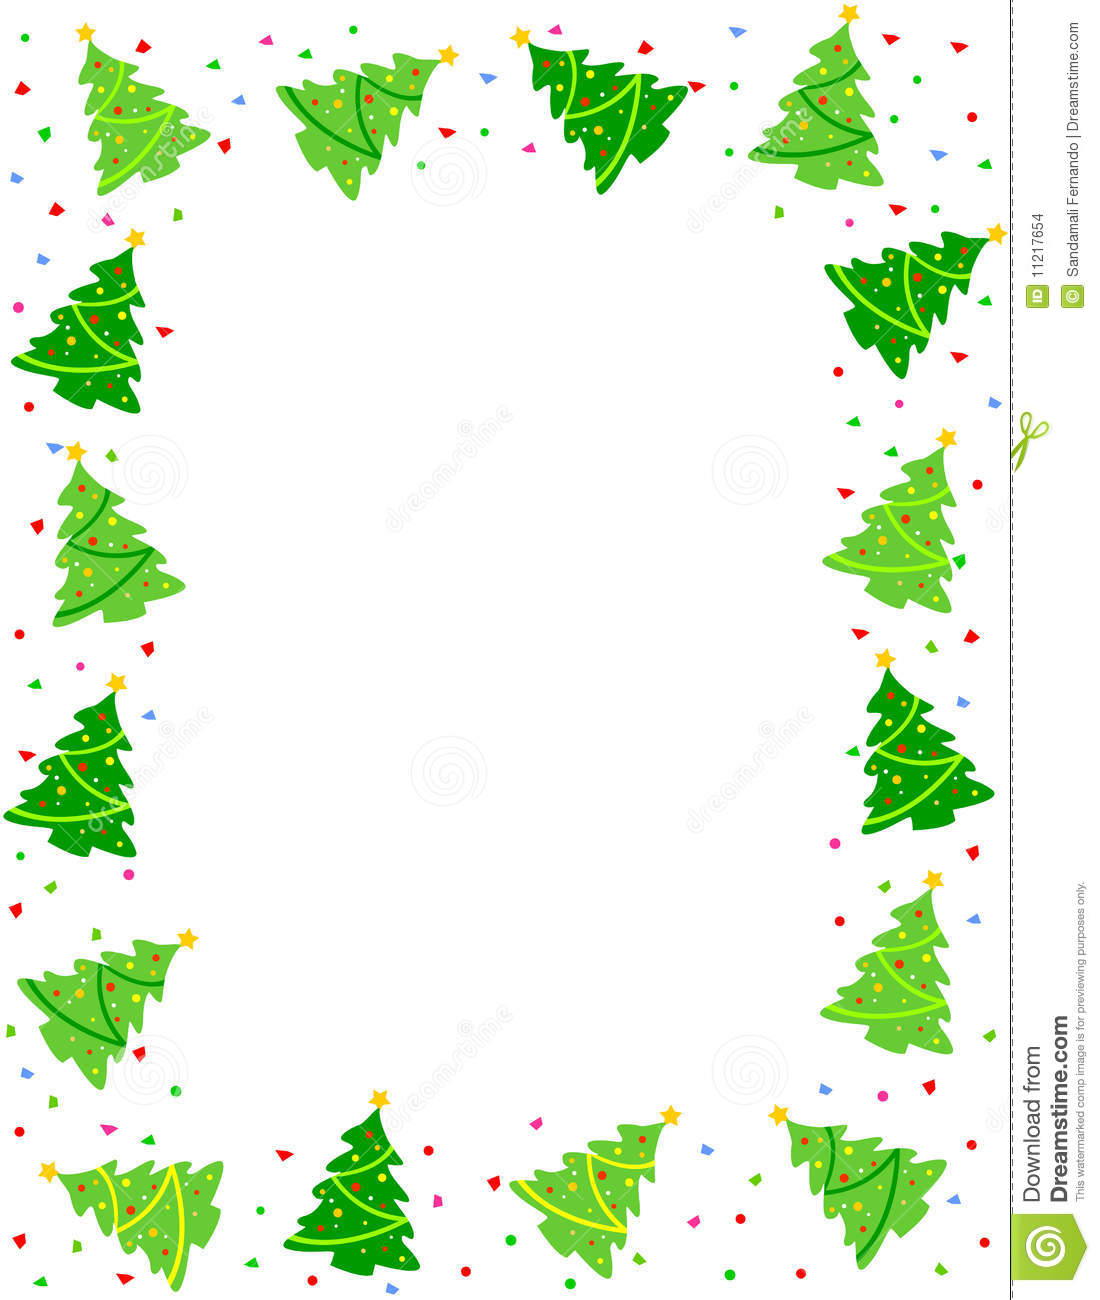 Christmas Tree Borders Clip Art Images P-Christmas Tree Borders Clip Art Images Pictures Becuo-15